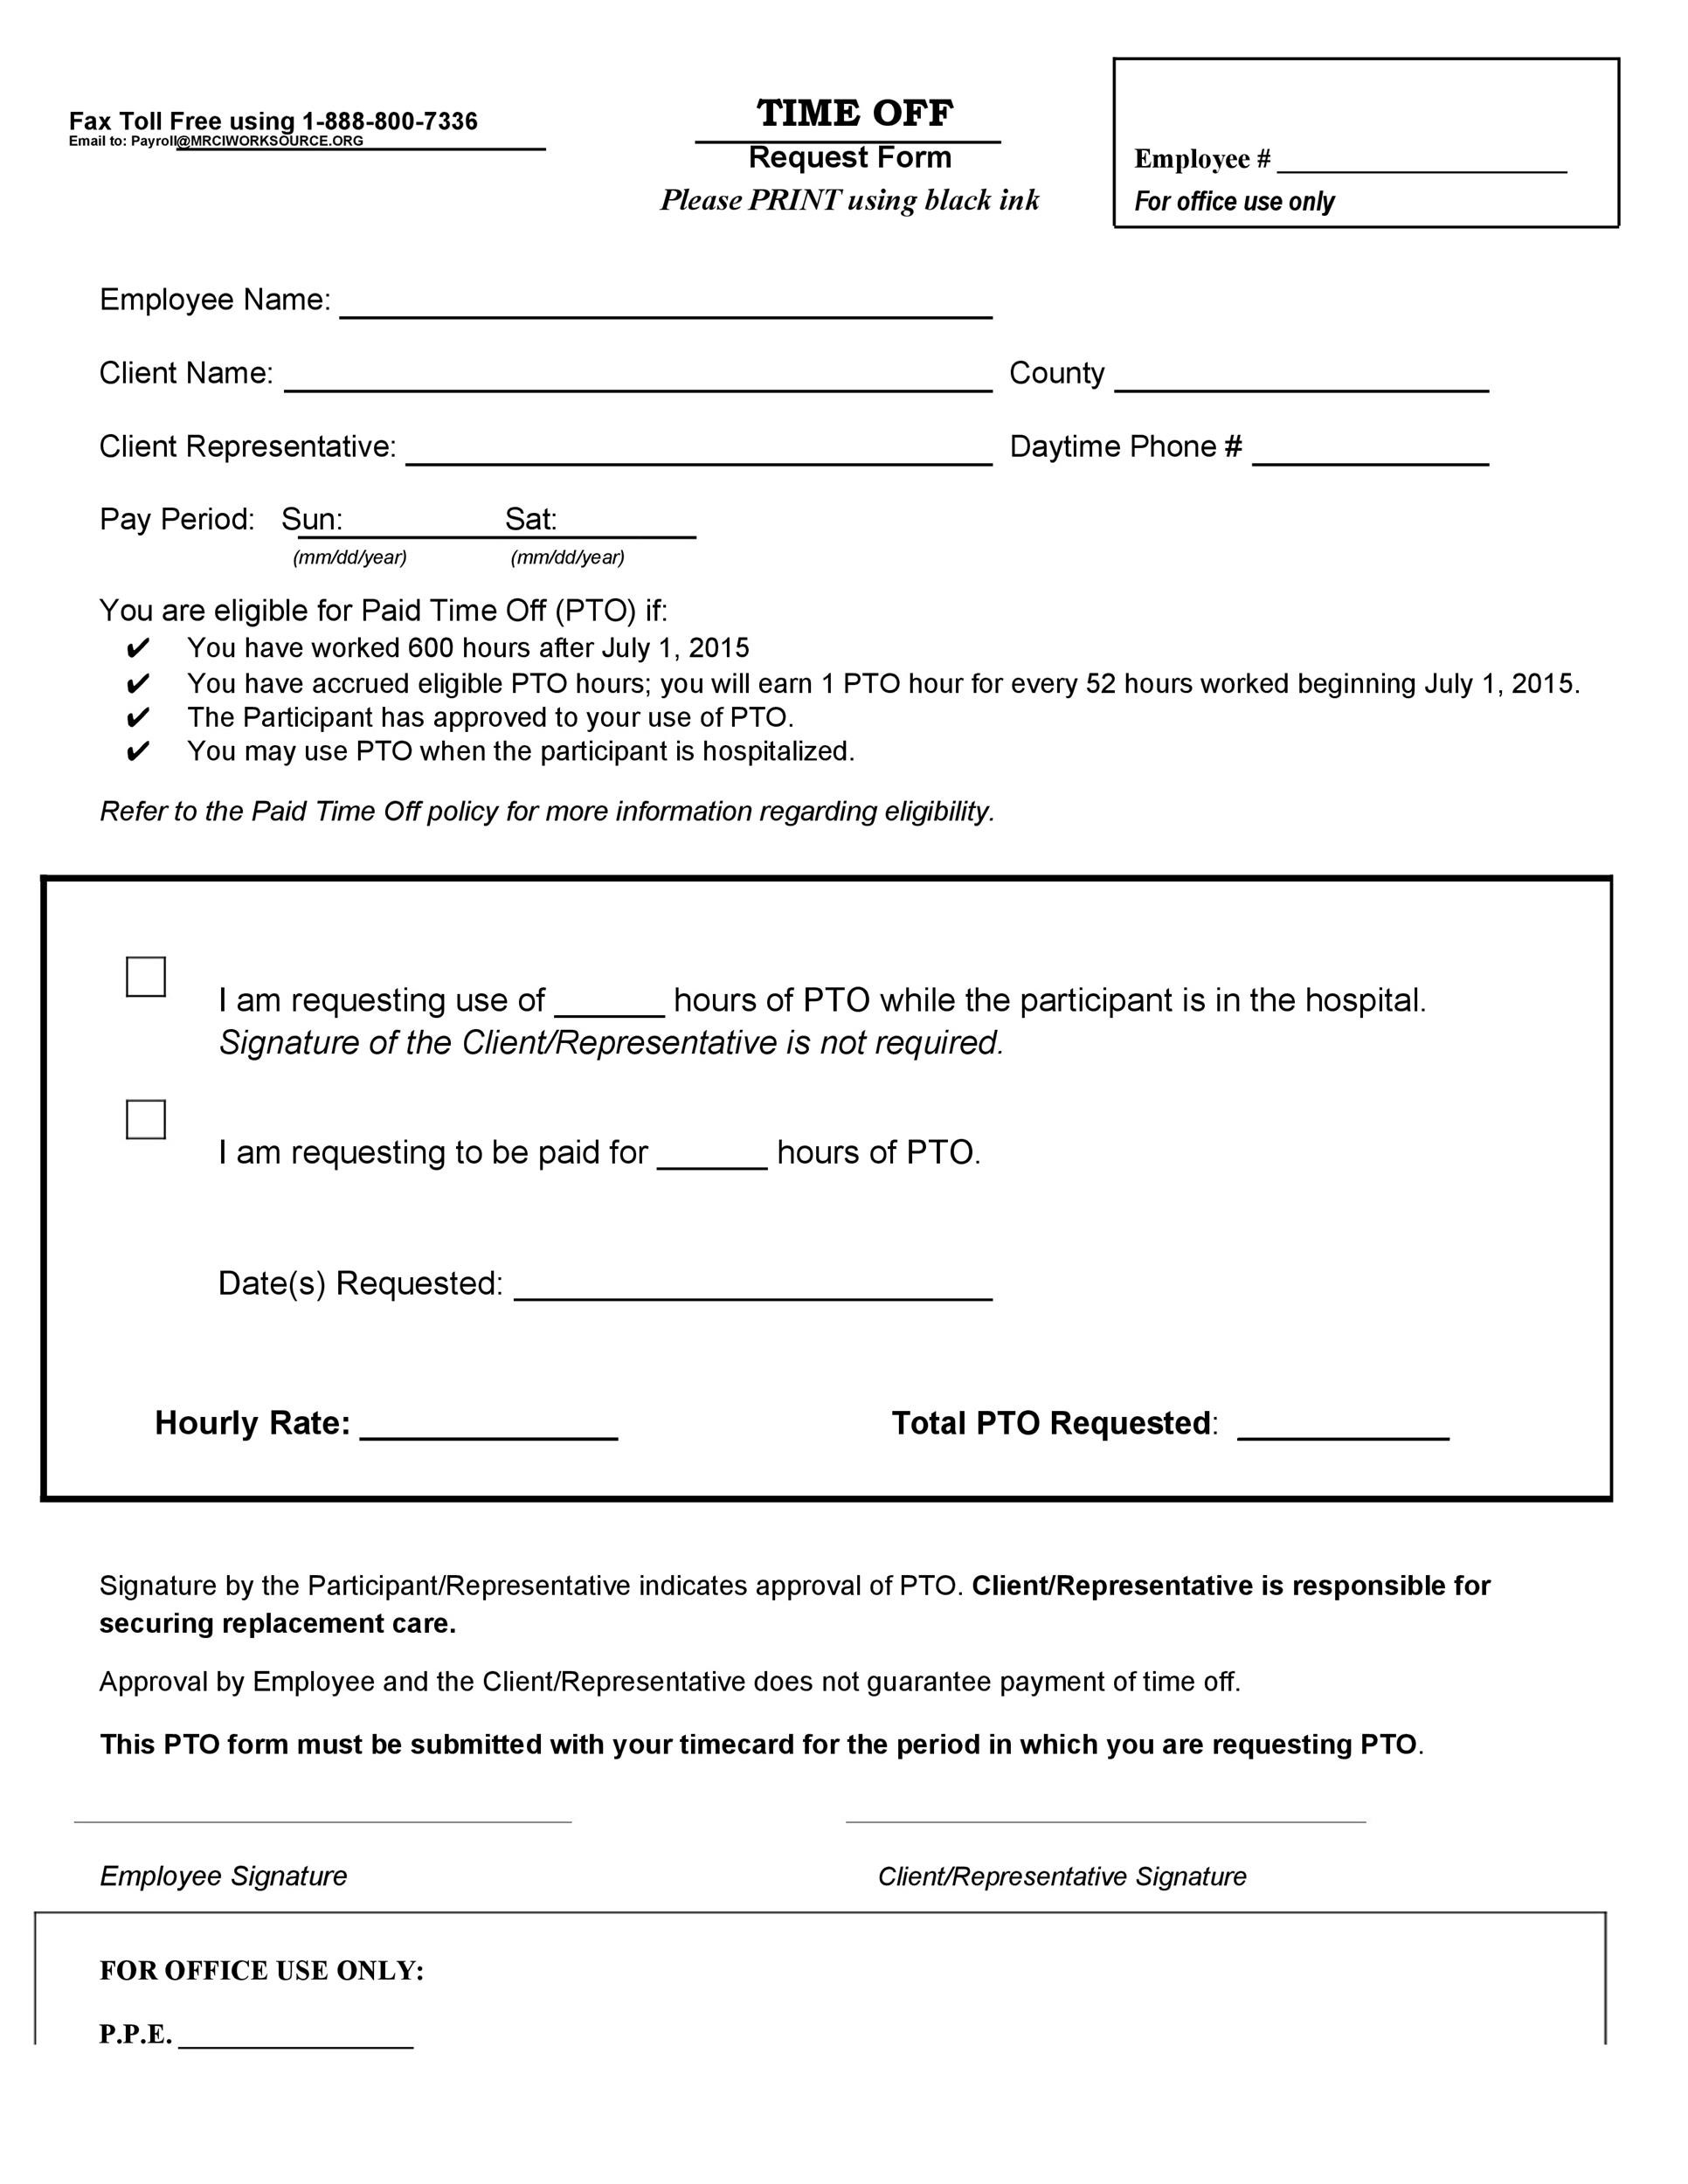 Free time off request form template 34